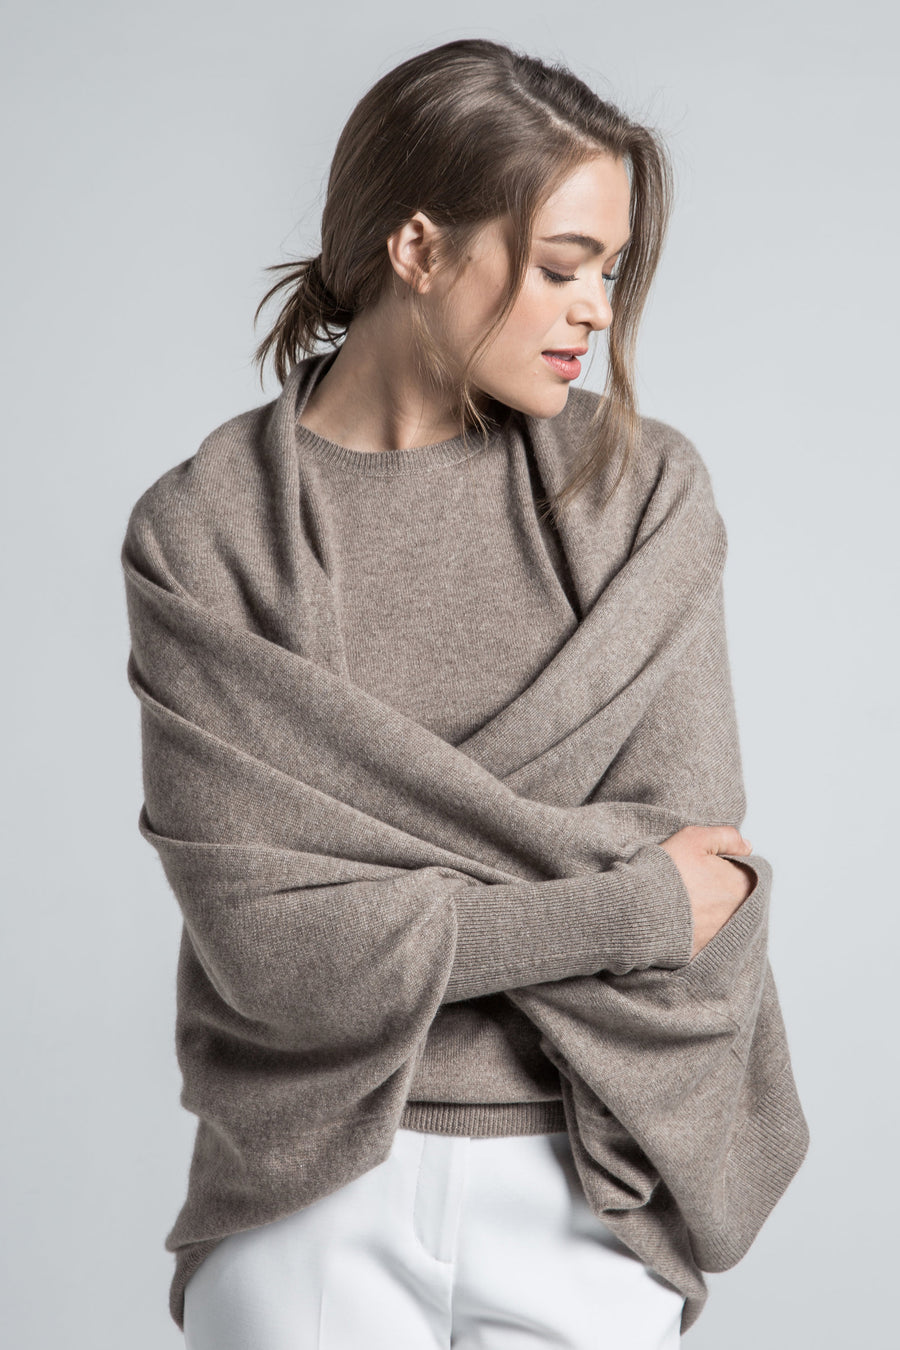 luxury soft and cozy organic brown cashmere multi wear cardigan wrap with sleeve and 2 front pocket